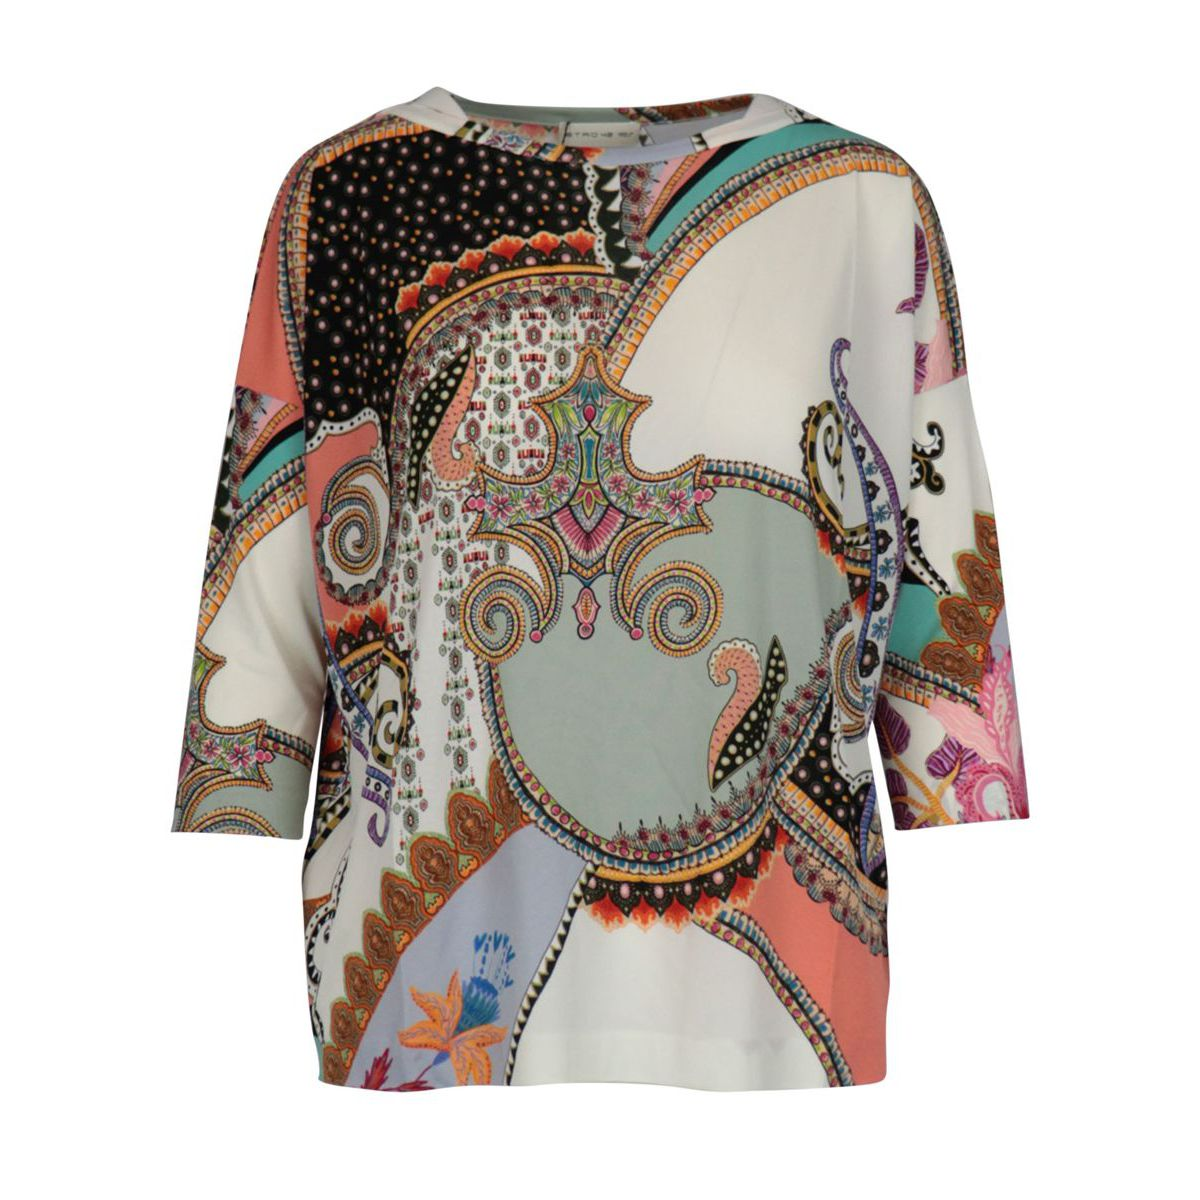 Kuk jersey jersey with three-quarter sleeves Cream Etro